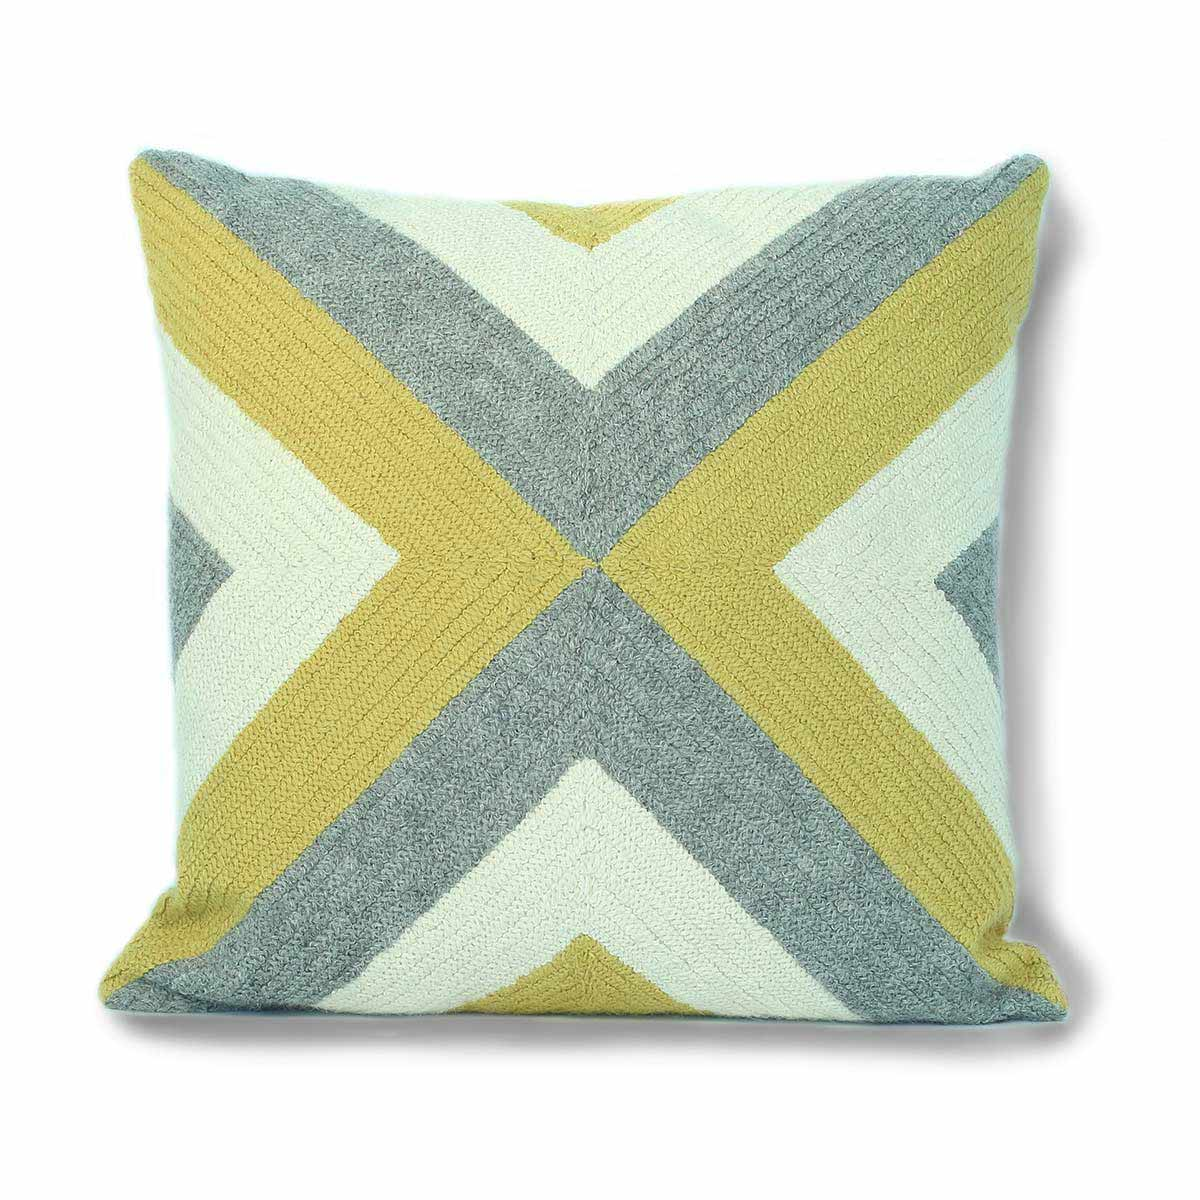 Grinda Square Pillow Citrus/Grey Eleish Van Breems Home